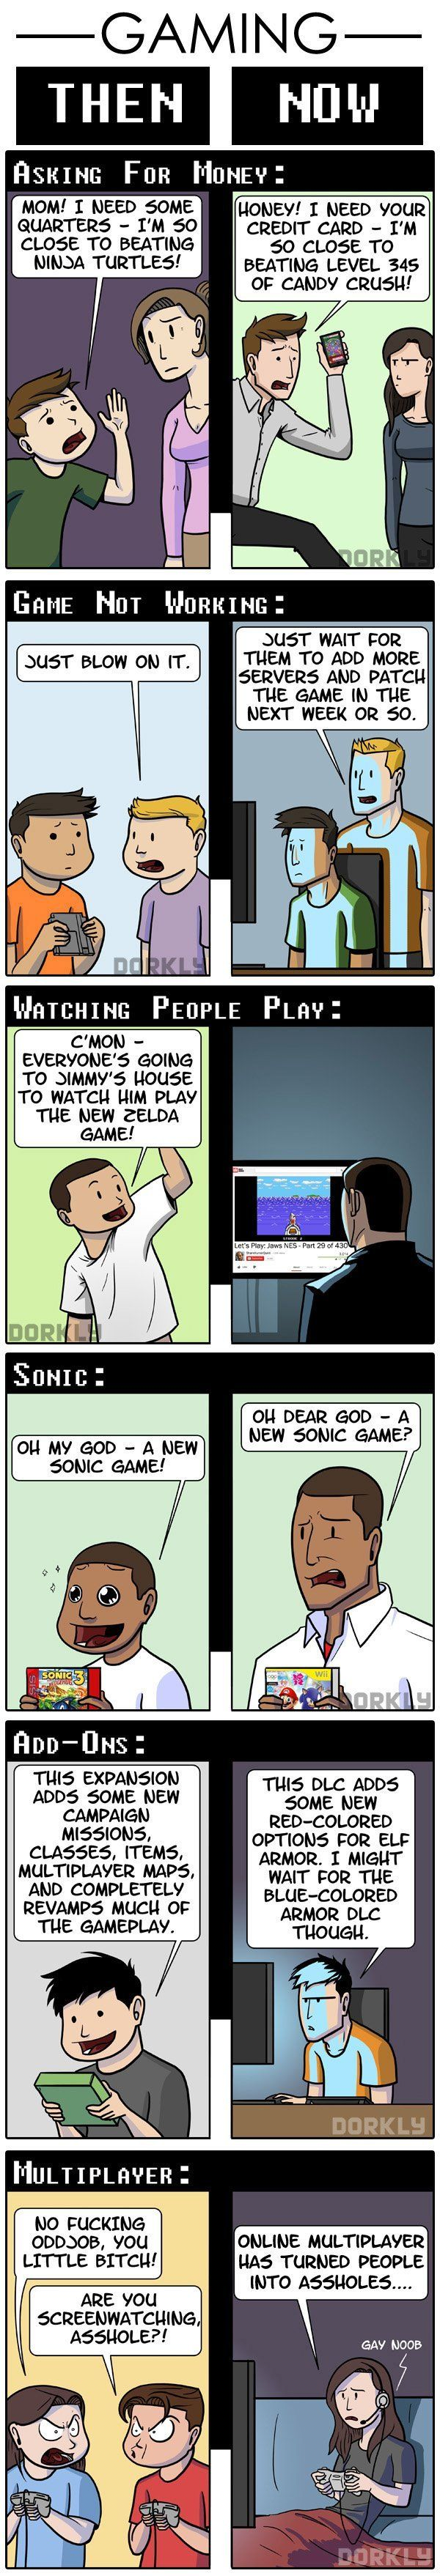 """Gaming, Then & Now (Part 3a)"" #dorkly #geek #videogames"